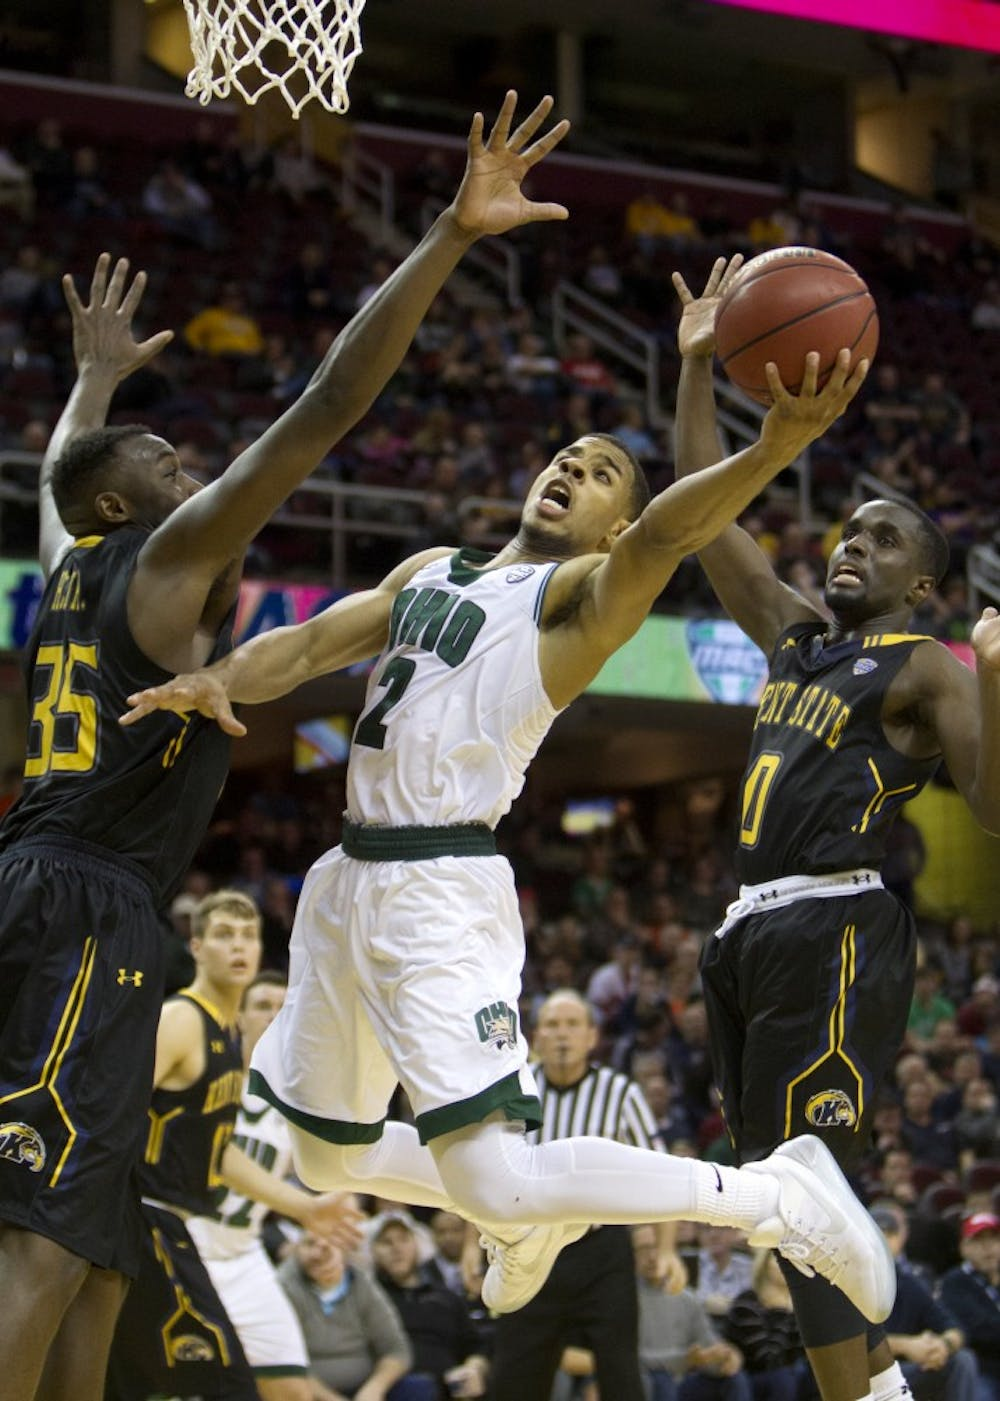 Men's Basketball: Ohio 1804 is bringing alumni back to play in The Basketball Tournament